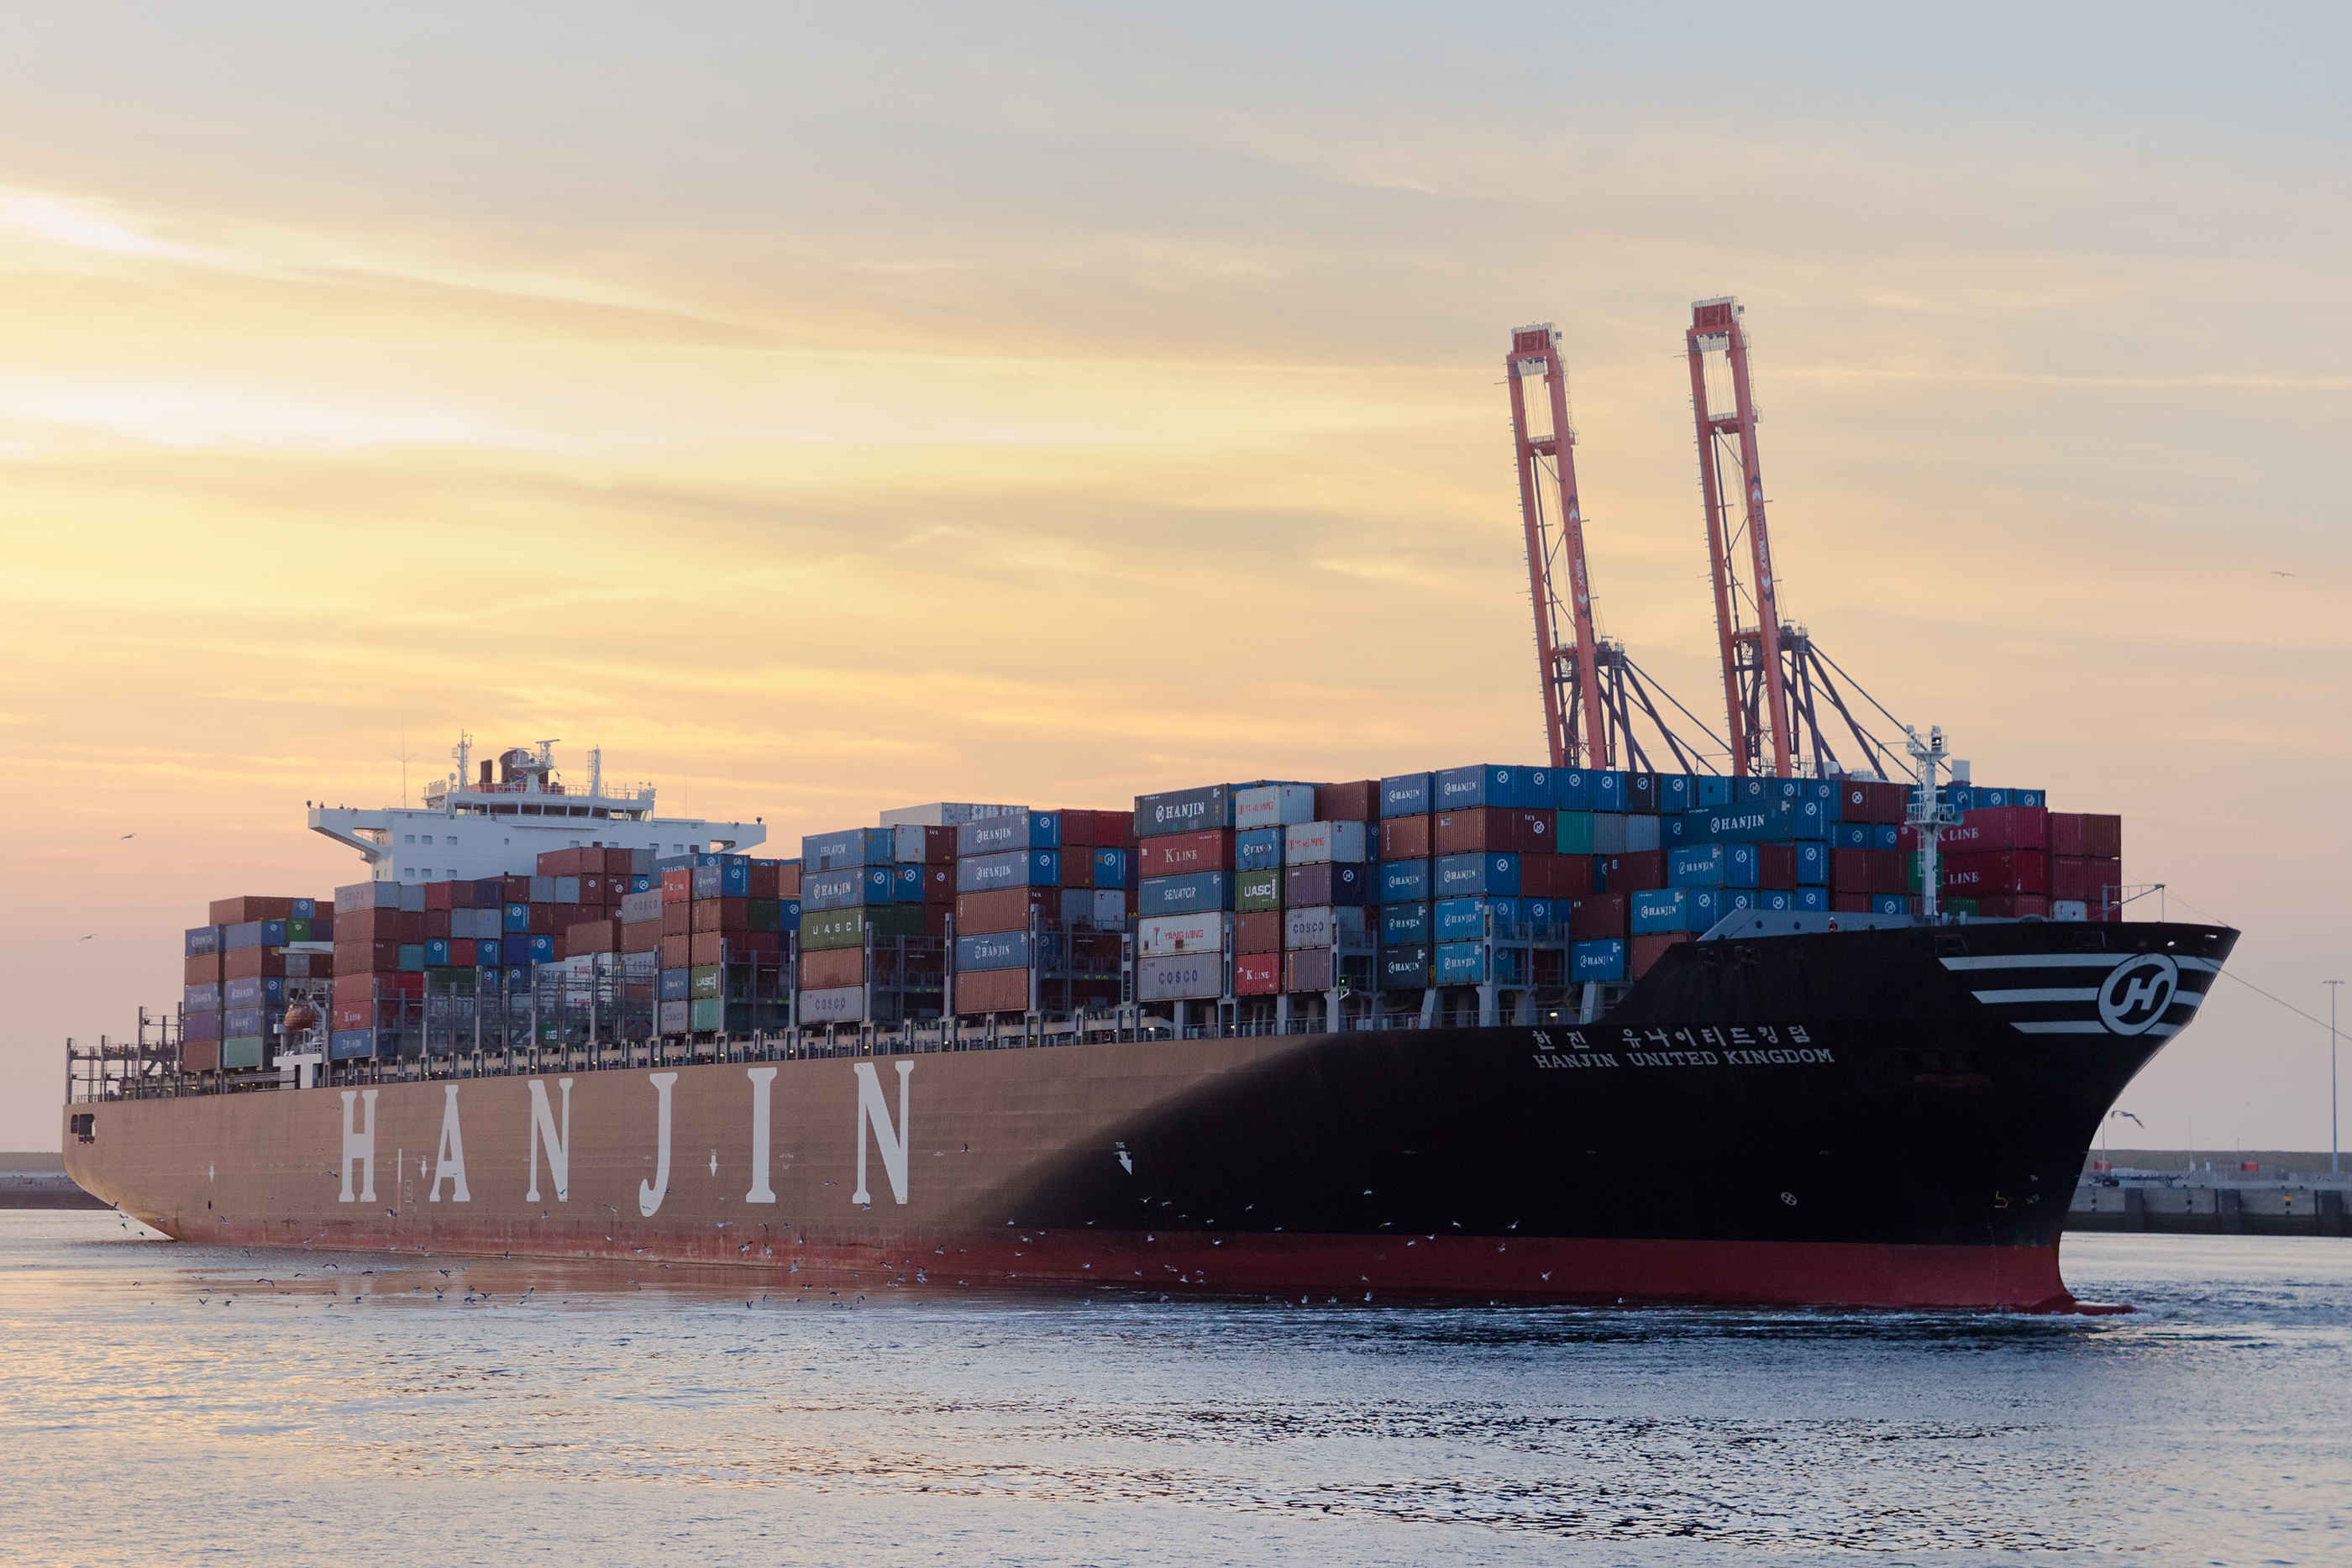 Hanjin struggles to find cash to meet creditors' claims